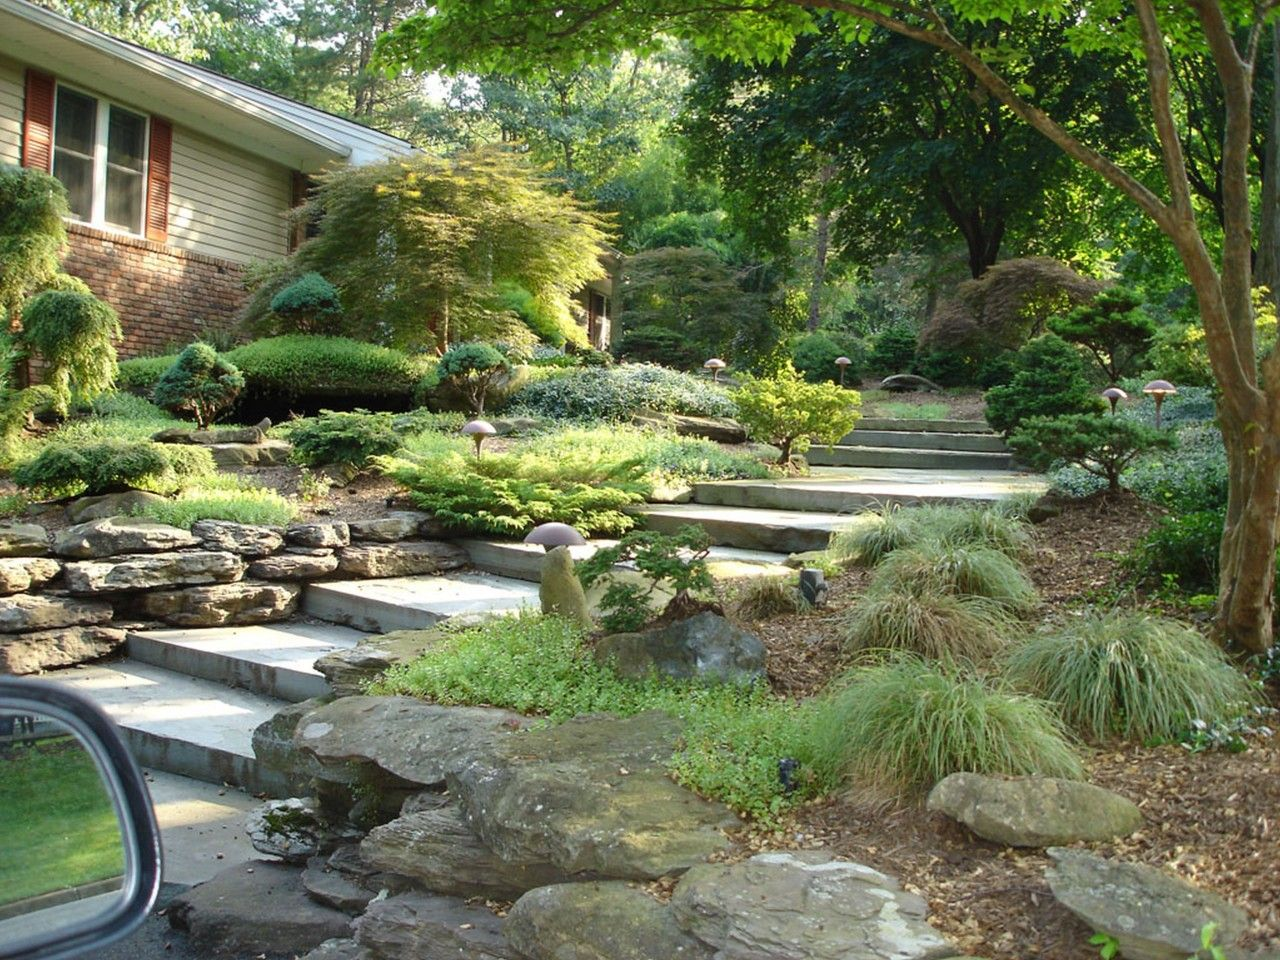 Astounding home landscaping ideas decor fetching small for Stone landscaping ideas